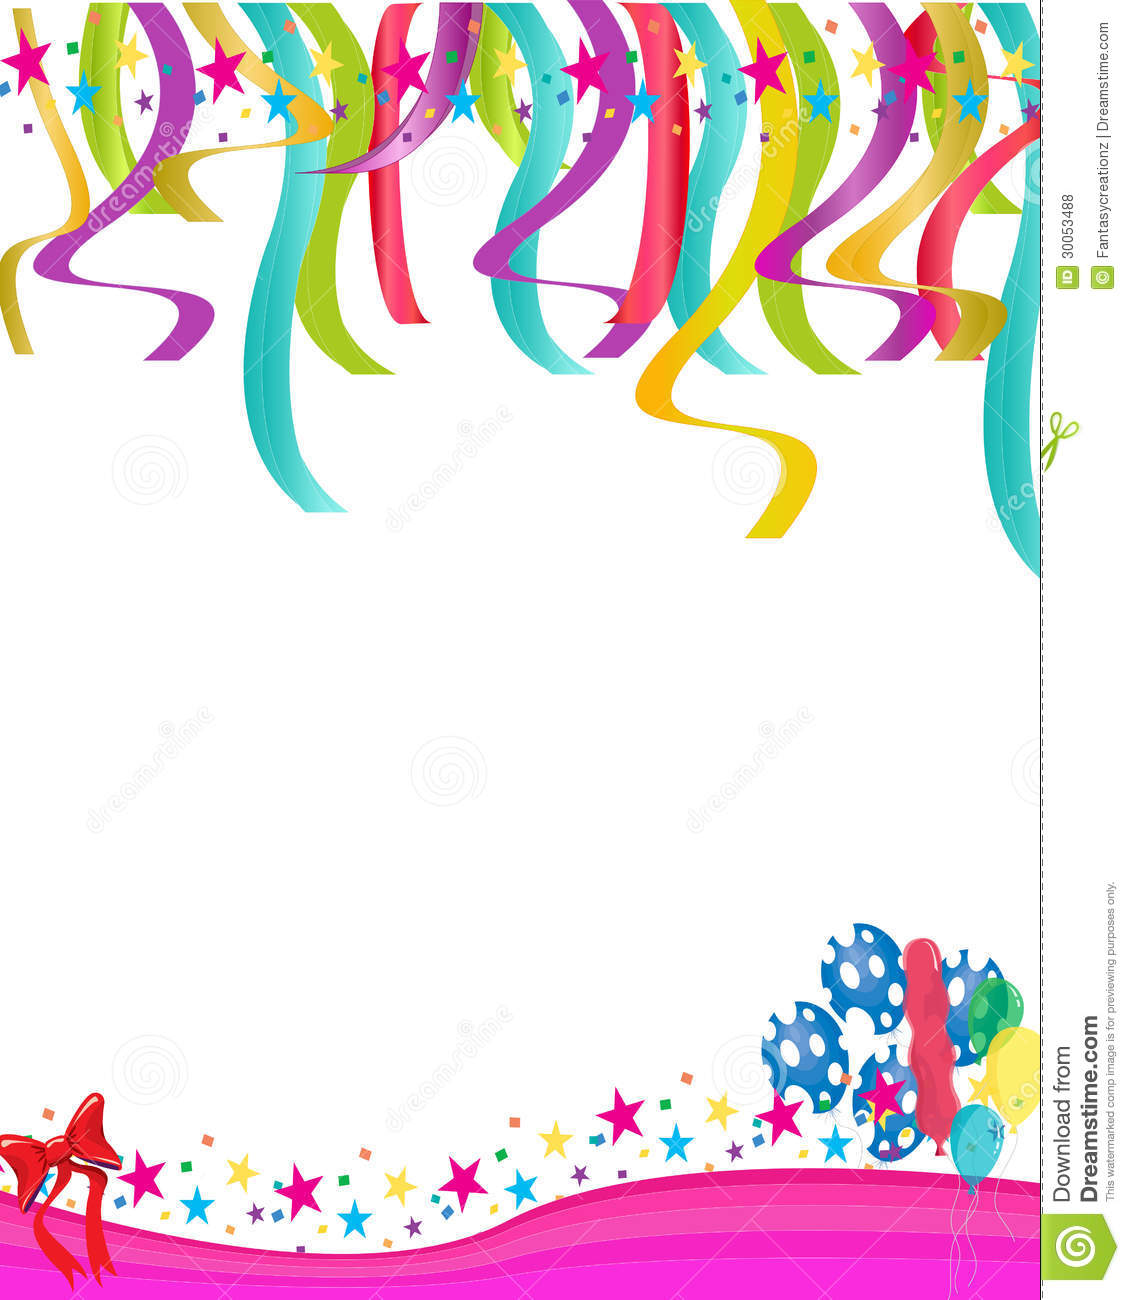 birthday invitation card background design ; innovative-christmas-party-invitation-background-on-awesome-article